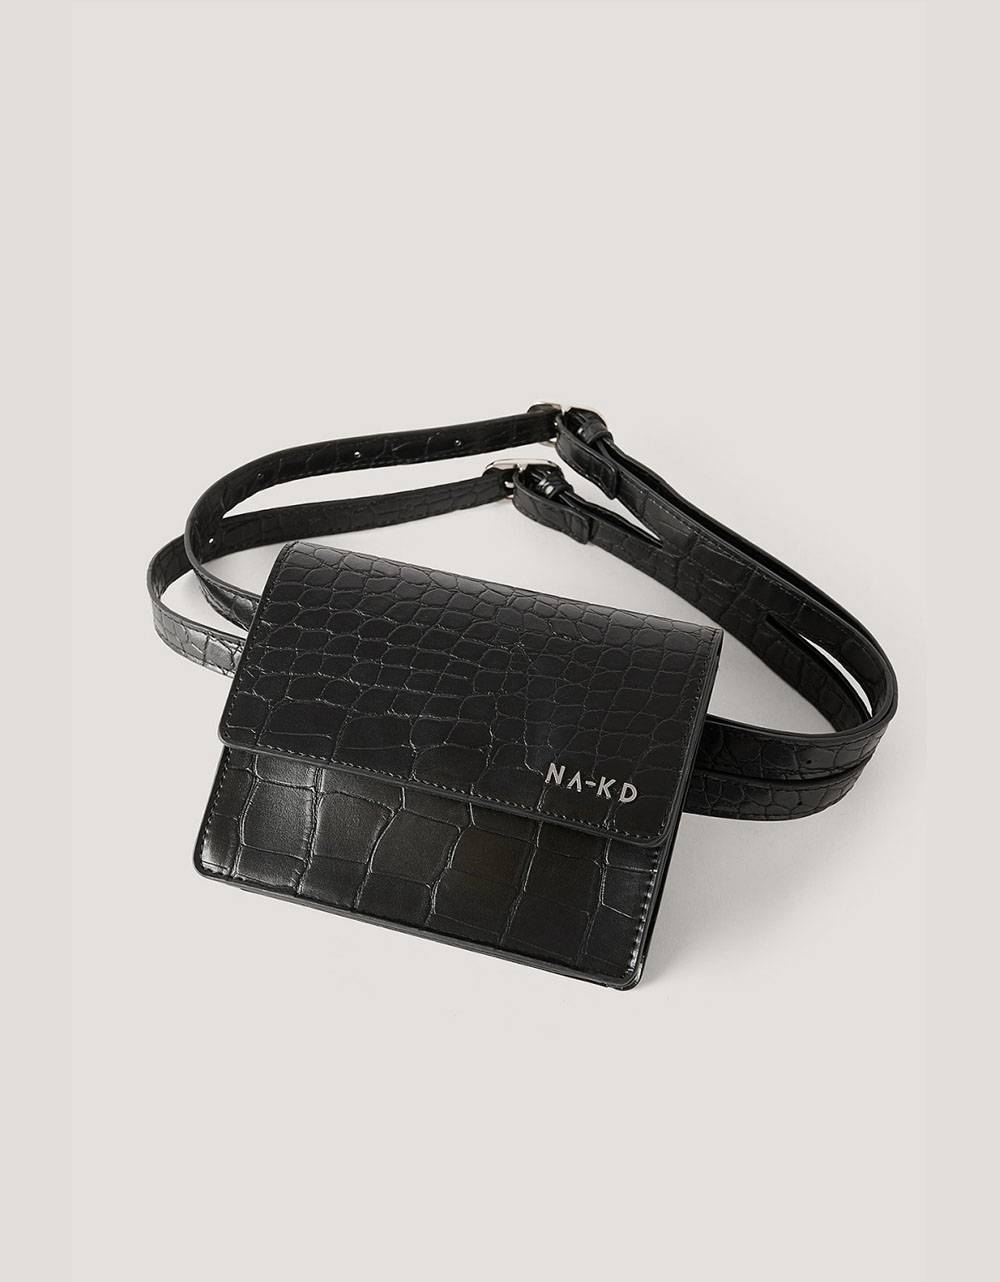 NA-KD mini fanny pack - black NA-KD Bags 42,00 €